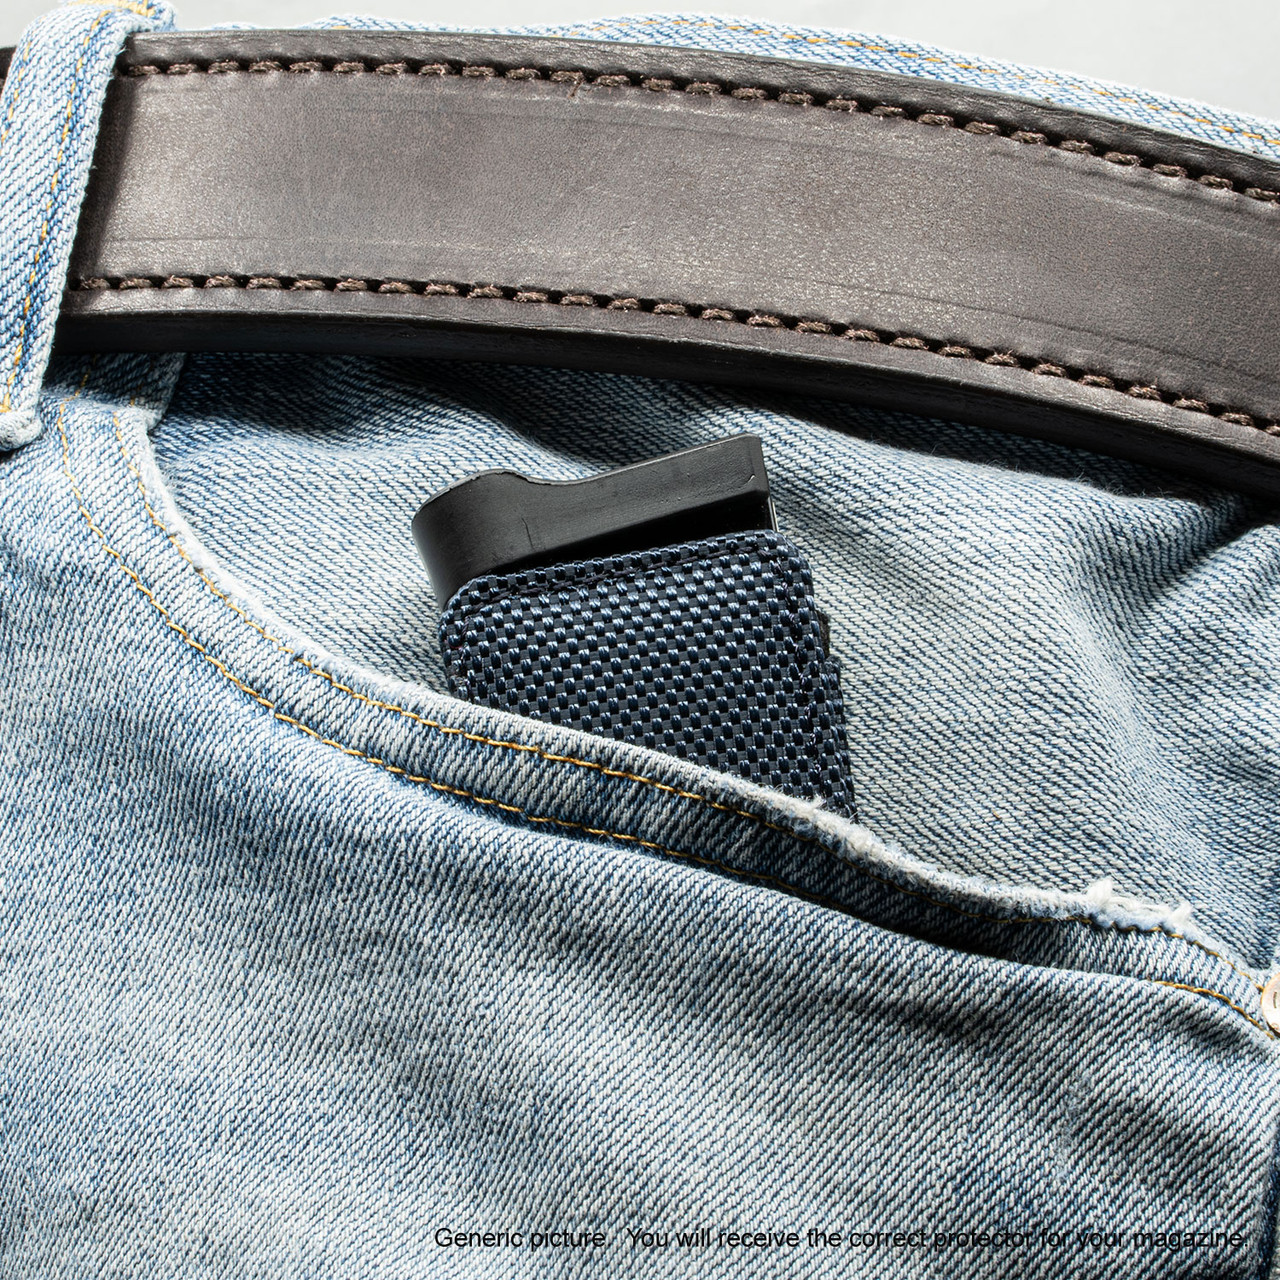 Sphinx SDP Compact Blue Covert Magazine Pocket Protector